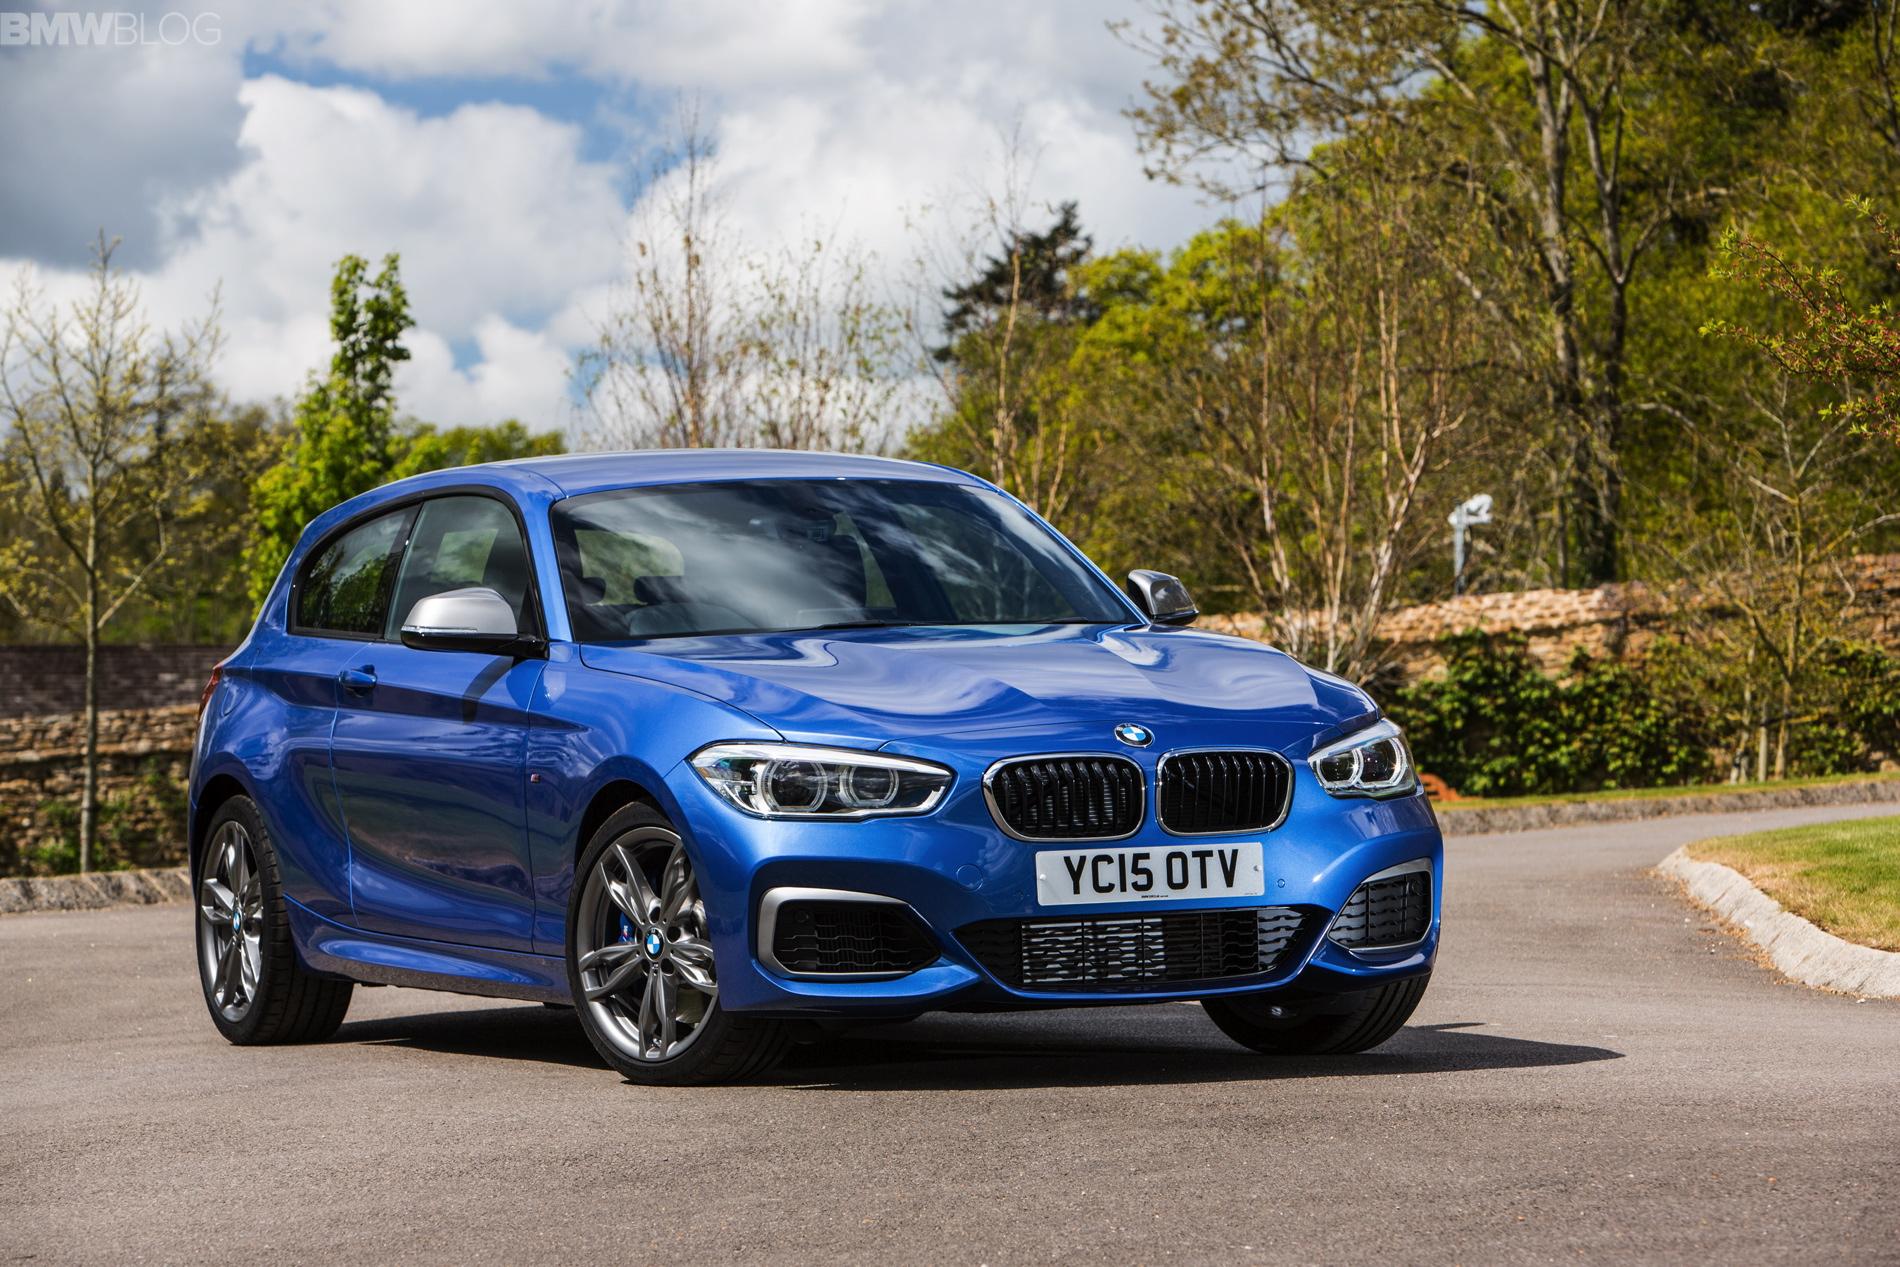 Bmw M135i In Sapphire Black Alpine White And Estoril Blue